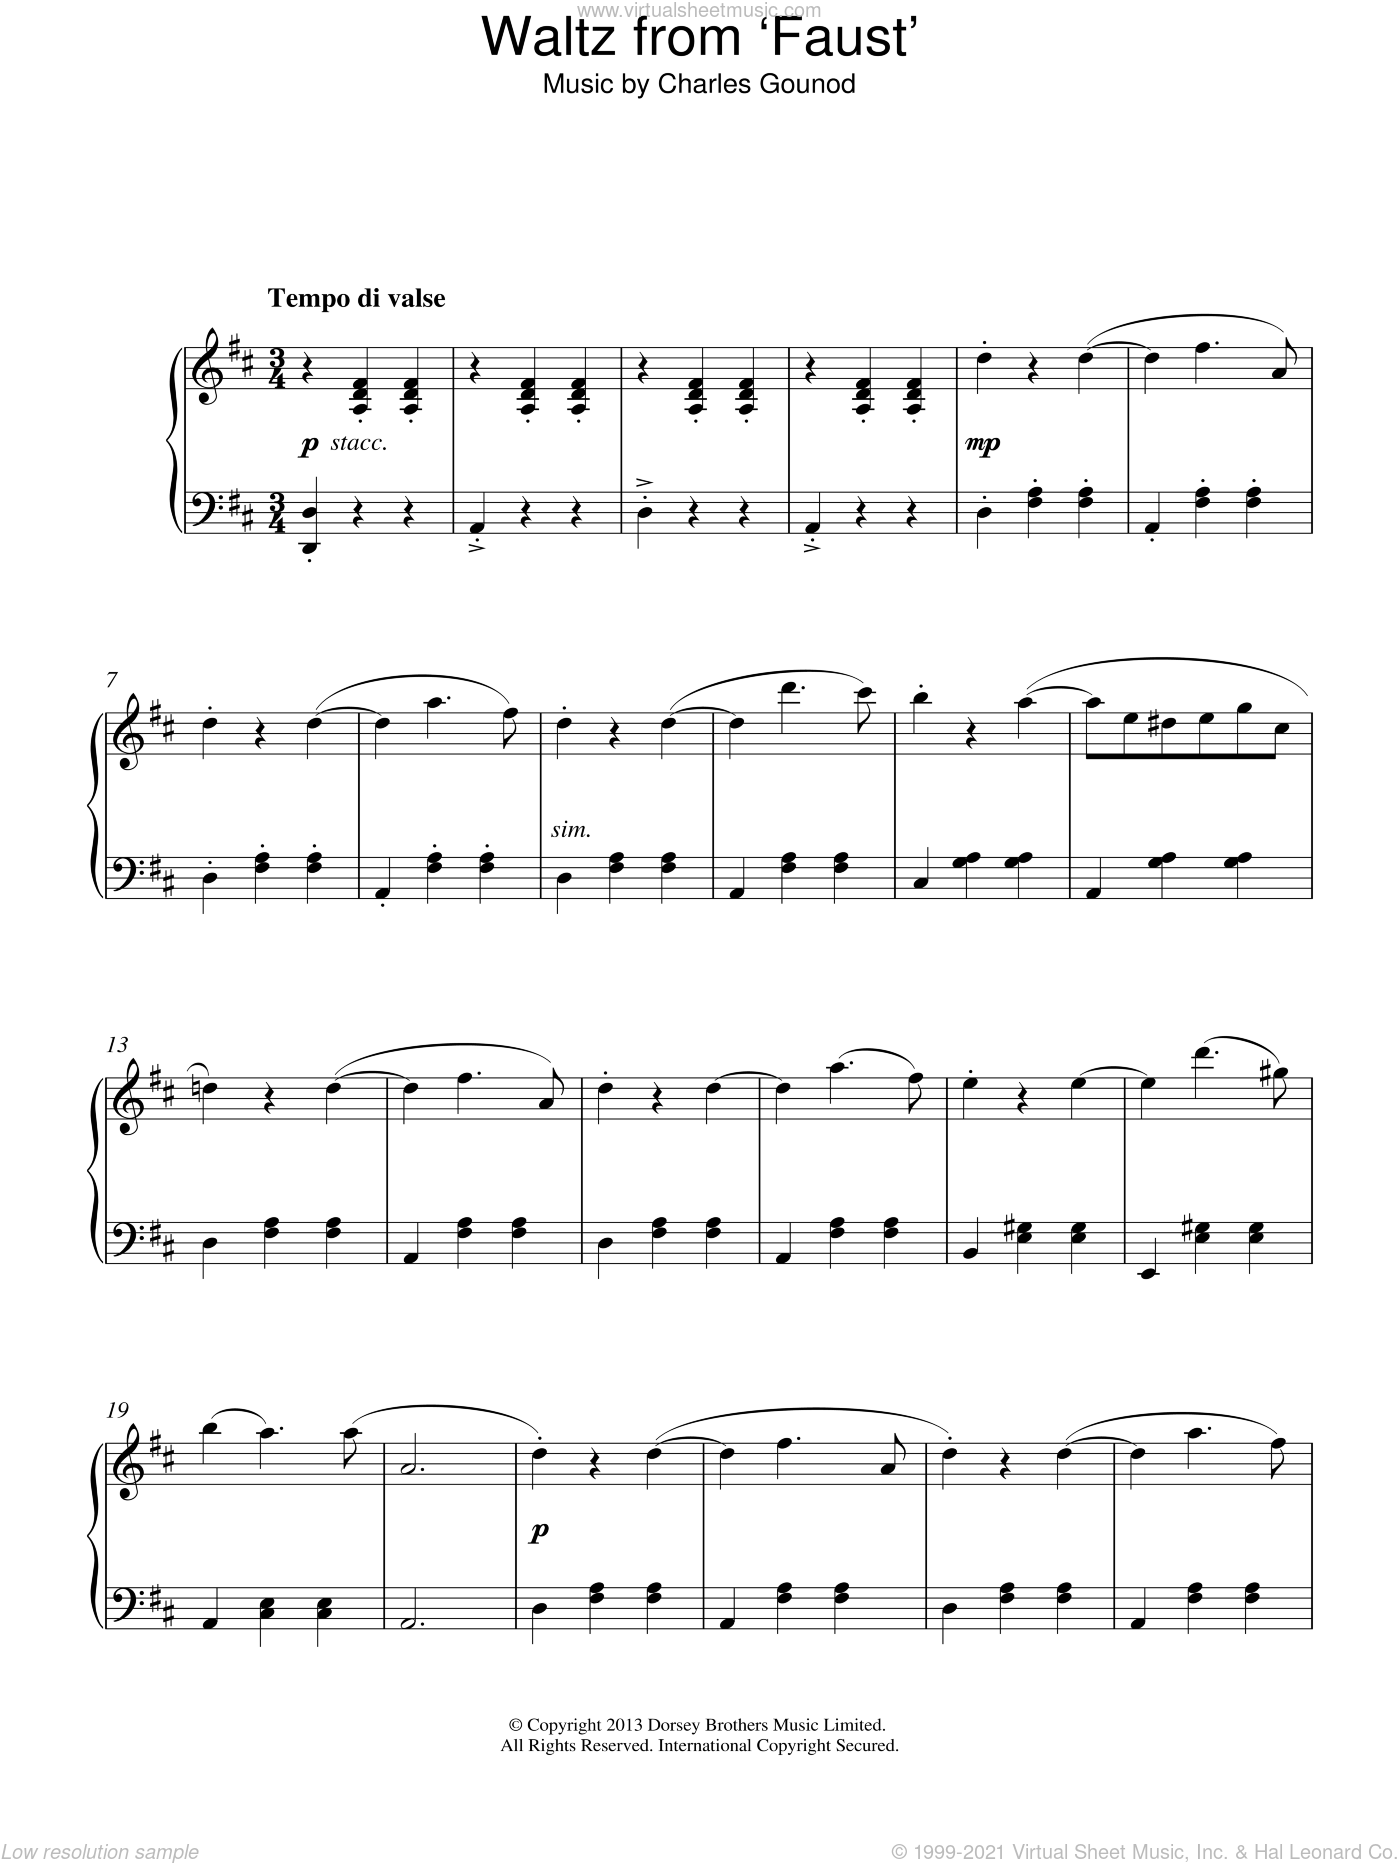 Waltz From Faust sheet music for piano solo by Charles Gounod, classical score, intermediate skill level